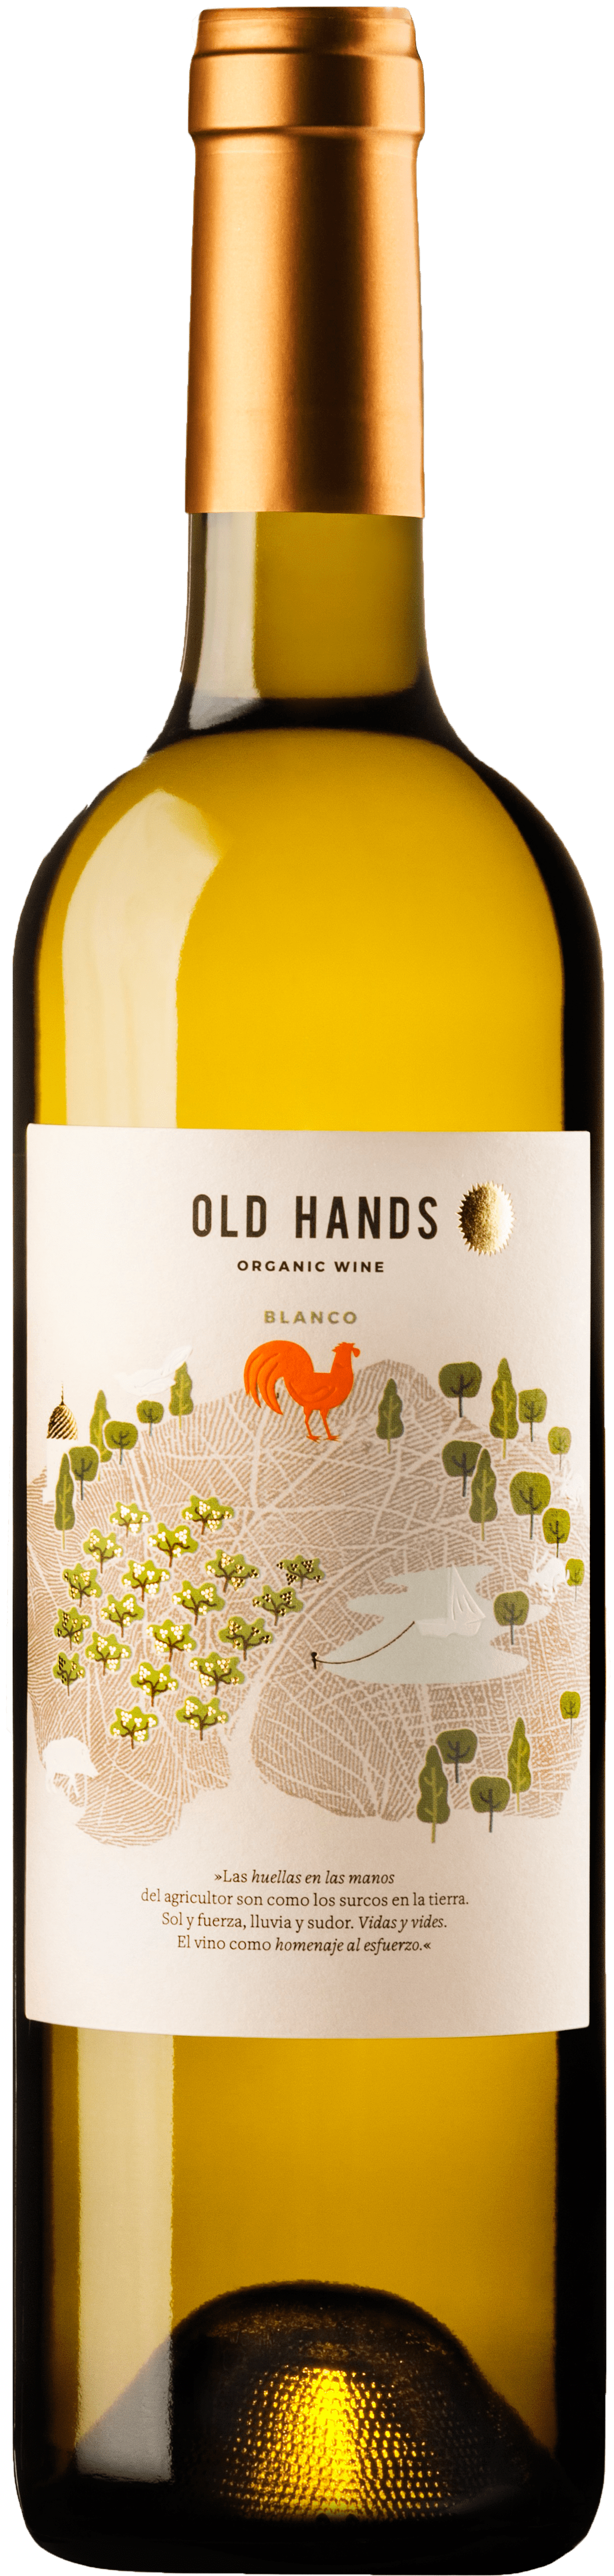 Old Hands Blanco